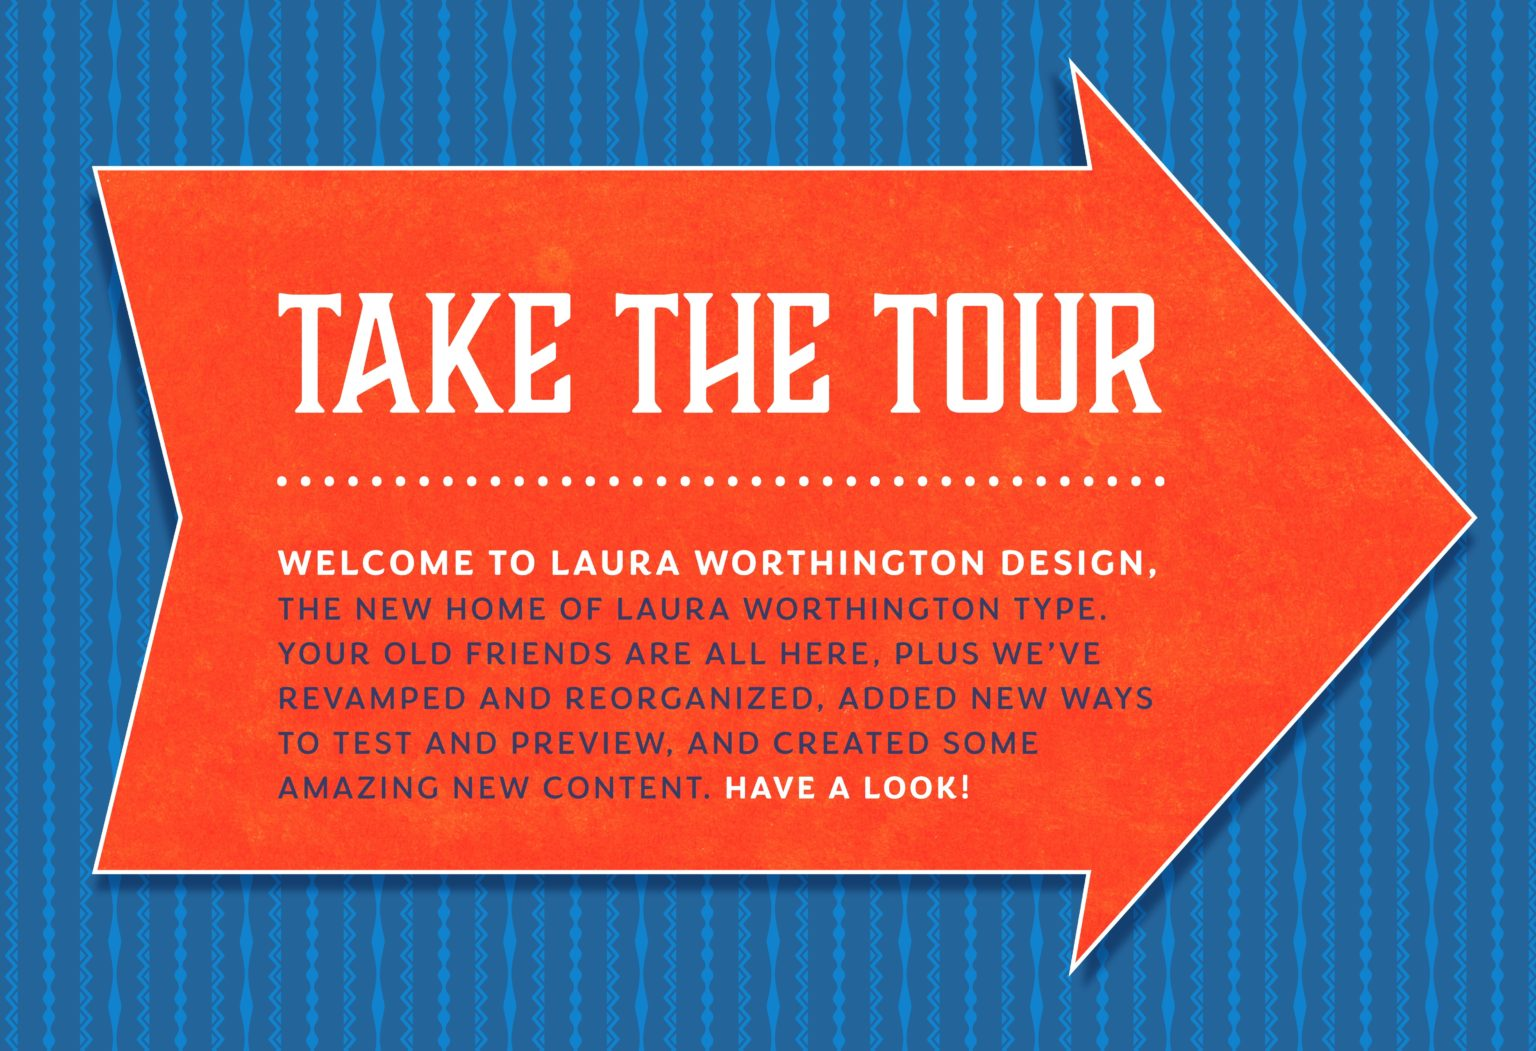 Welcome to Laura Worthington Design. All of your old friends are here, but we've revamped and reorganized, added new ways to test and preview, and created some amazing new content. Have a look!